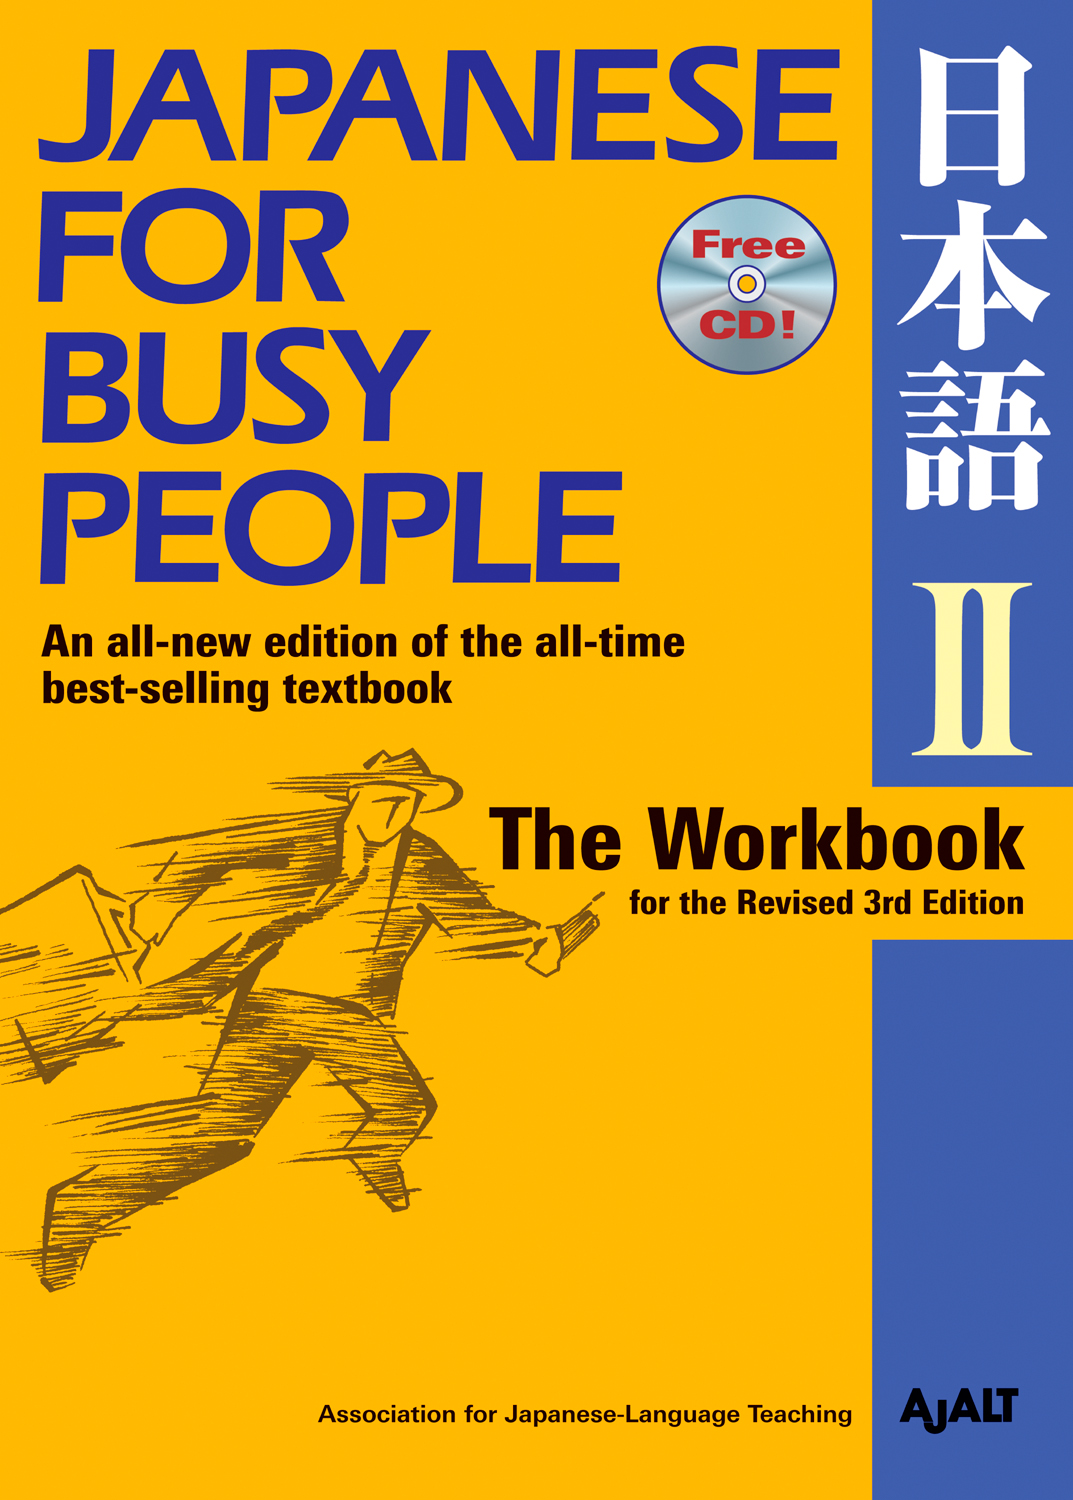 Cover of Japanese for Busy People Revised 3rd Edition II (The Workbook): An all-new edition of the all-time best-selling textbook.